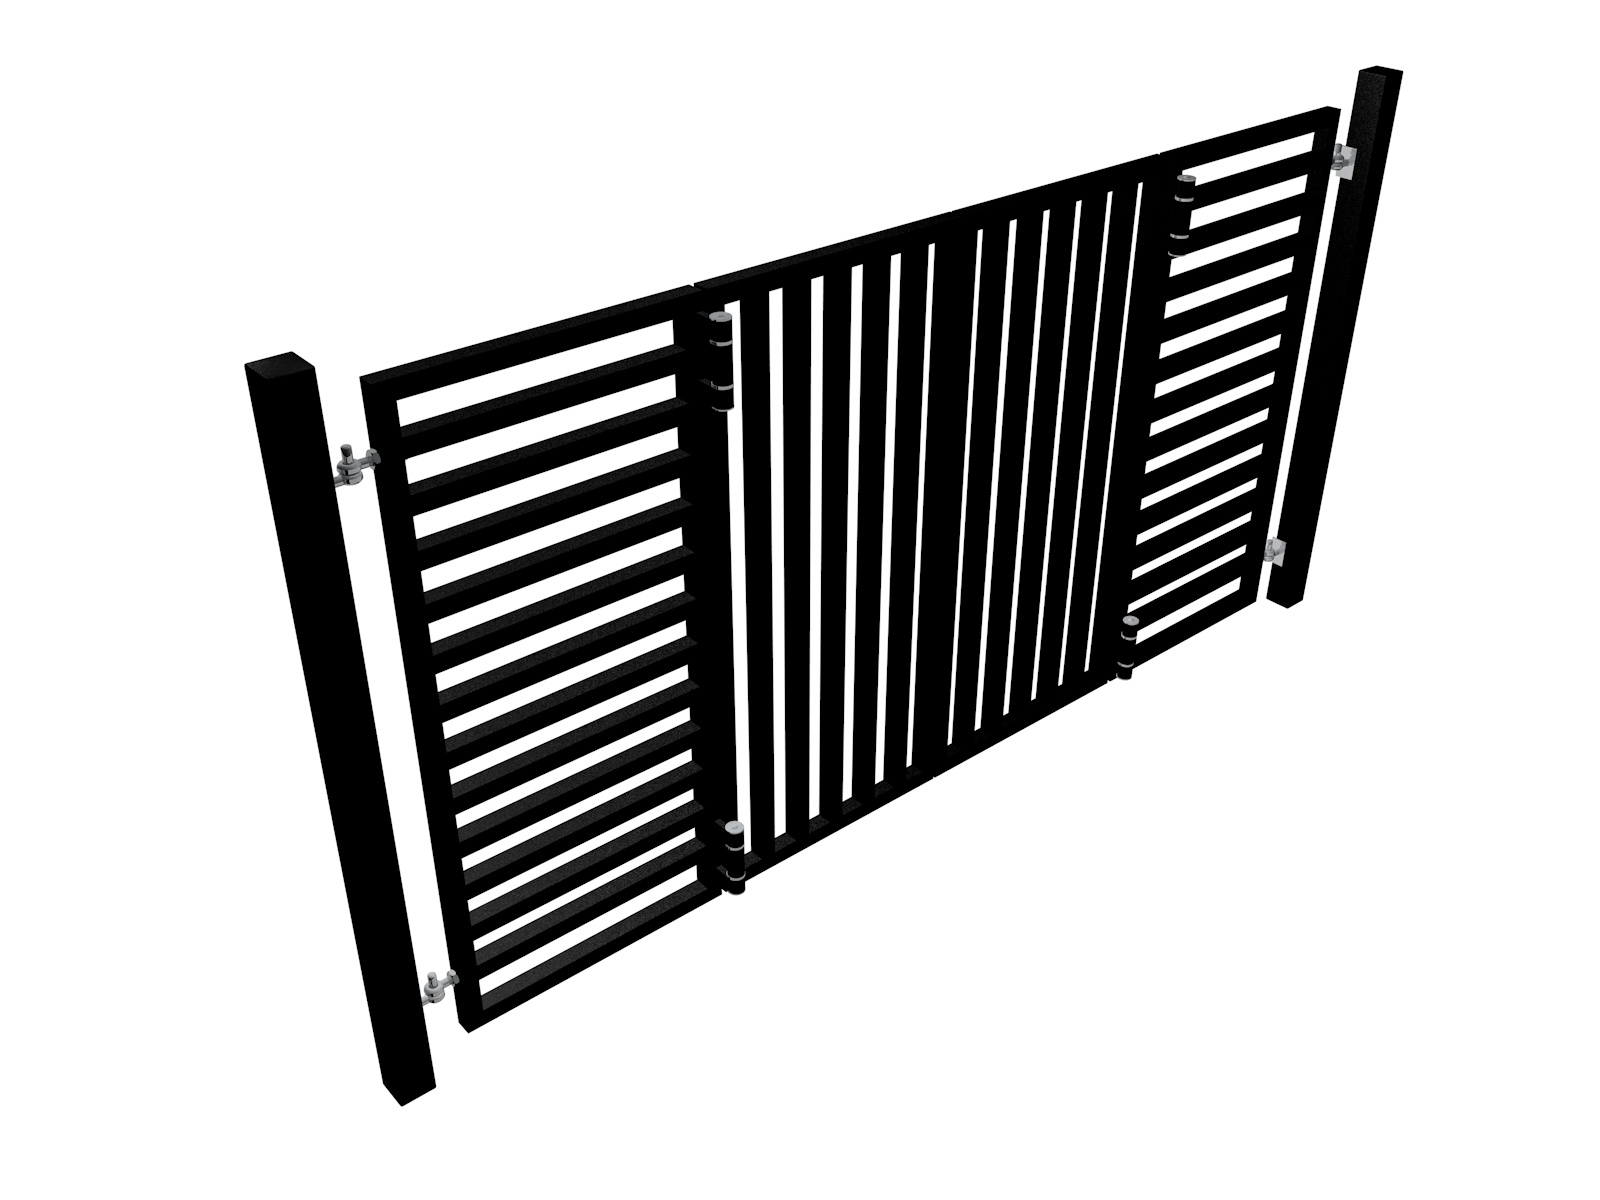 contemporary bi-fold automated metal driveway gate with square section fill bars